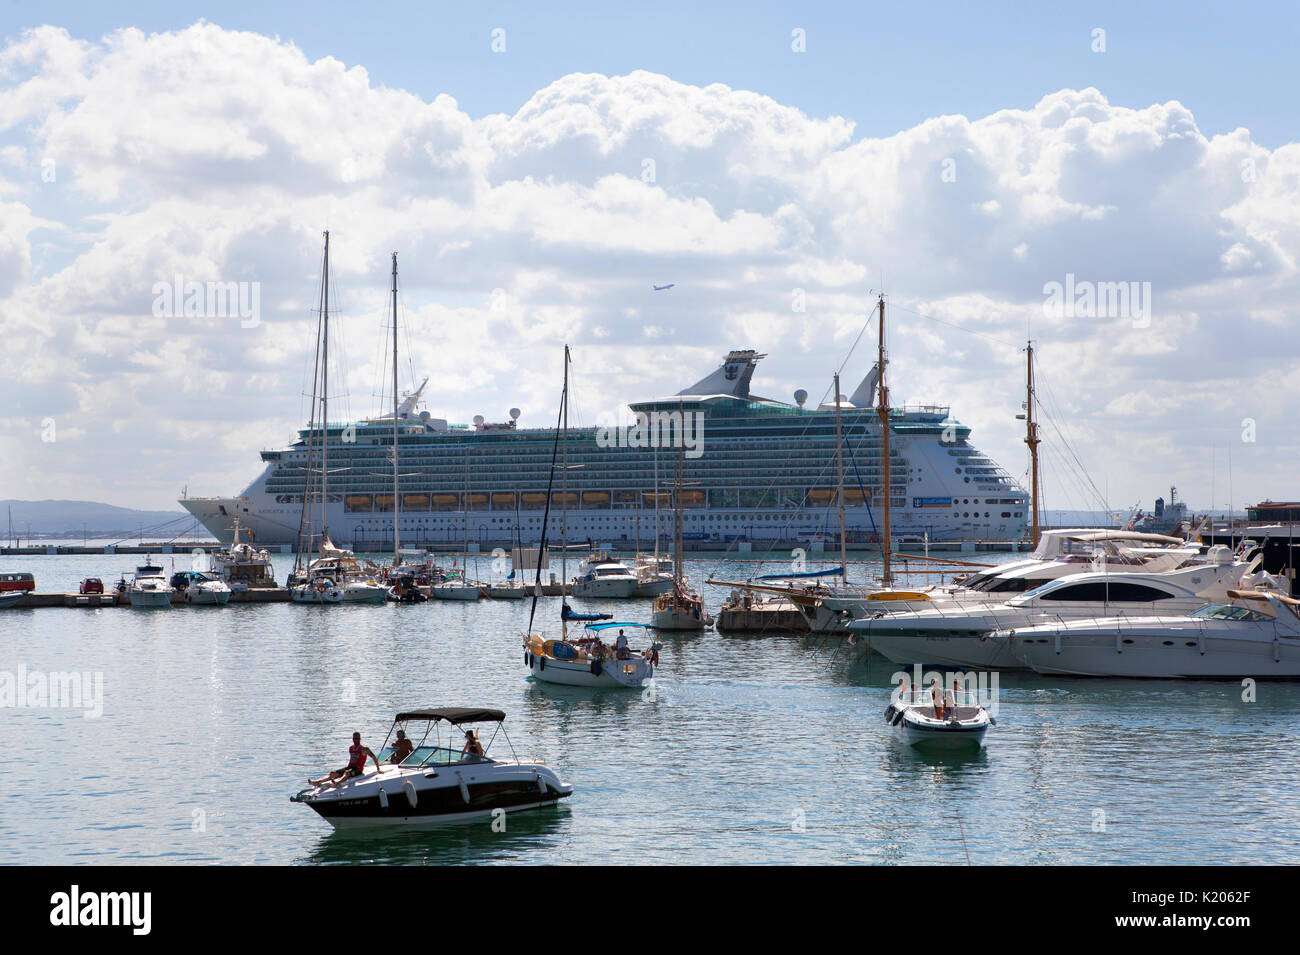 Royal Caribbean Navigator of the Seas Voyager class cruise ship in the  Mediterranean - Stock Image